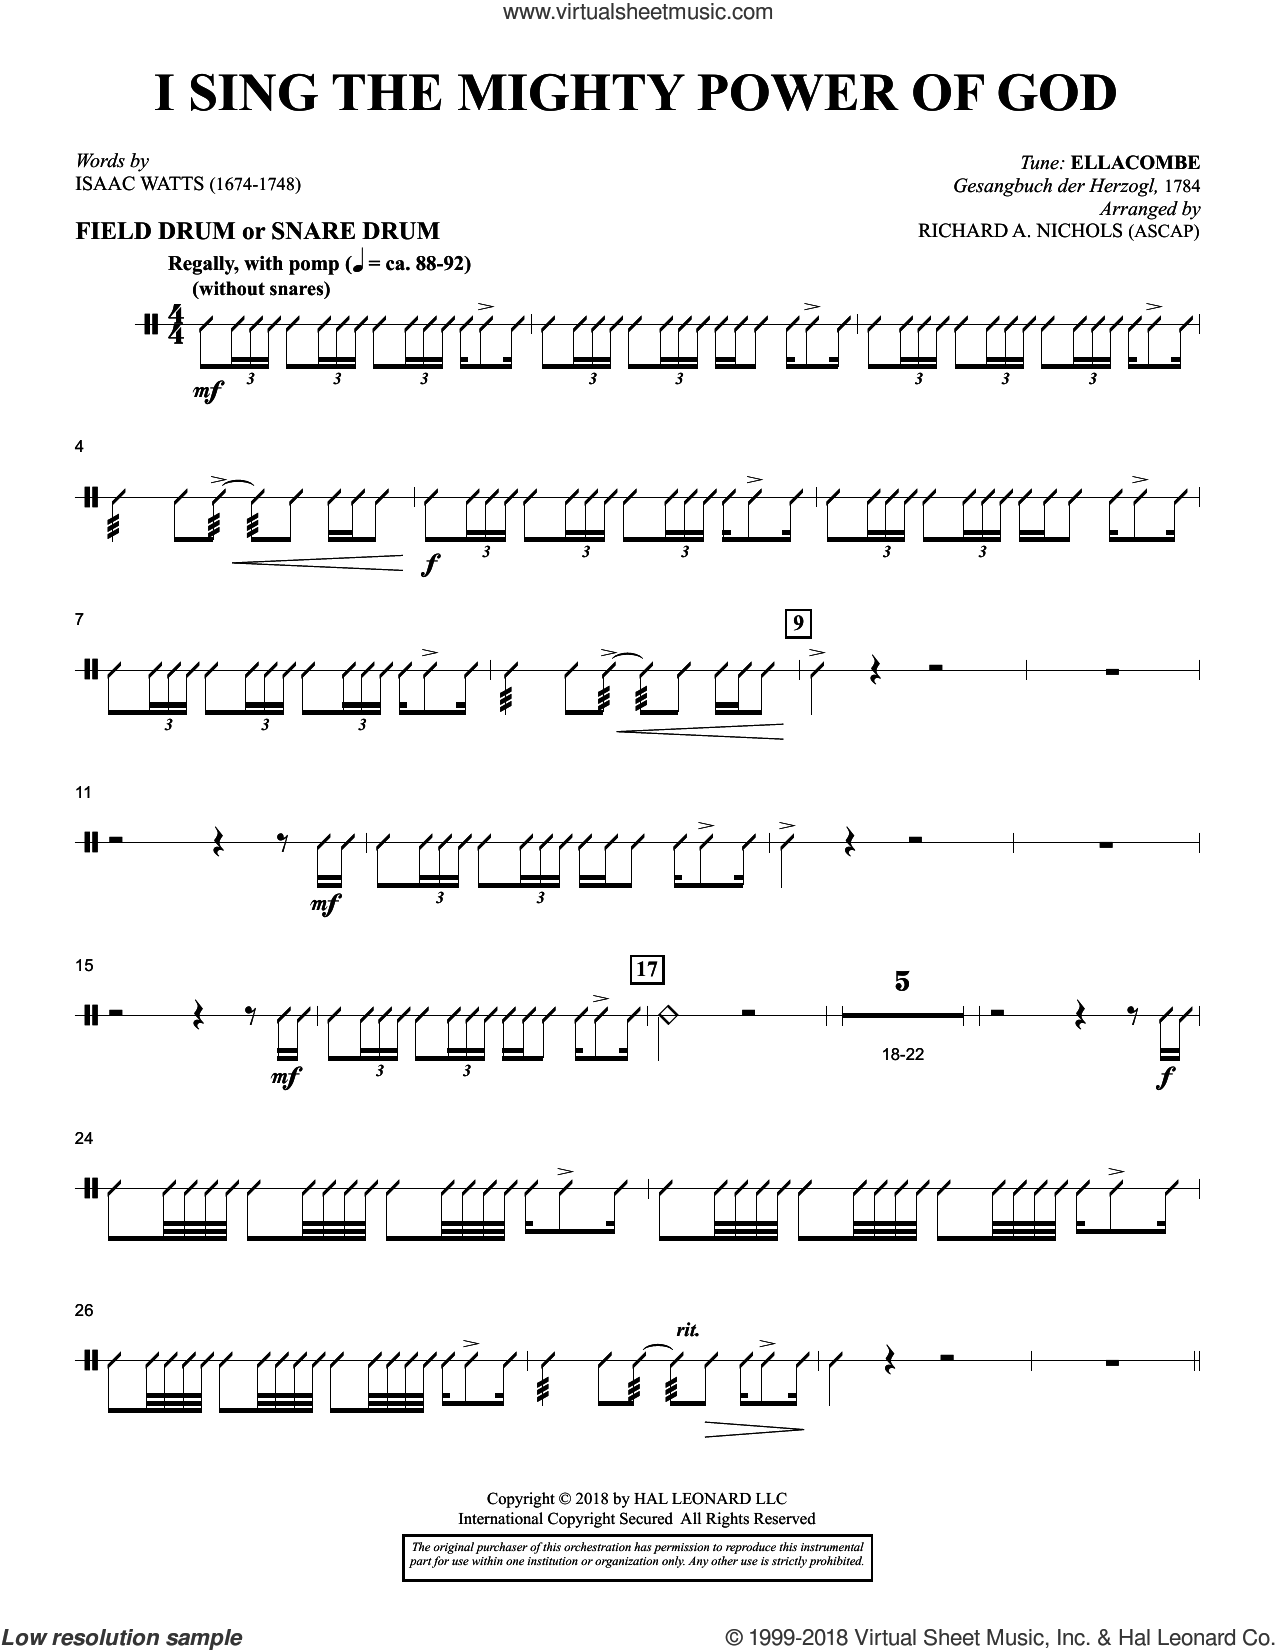 I Sing the Mighty Power of God (arr. Richard Nichols) sheet music for orchestra/band (snare drum/field drum) by Isaac Watts and Richard A. Nichols, intermediate skill level